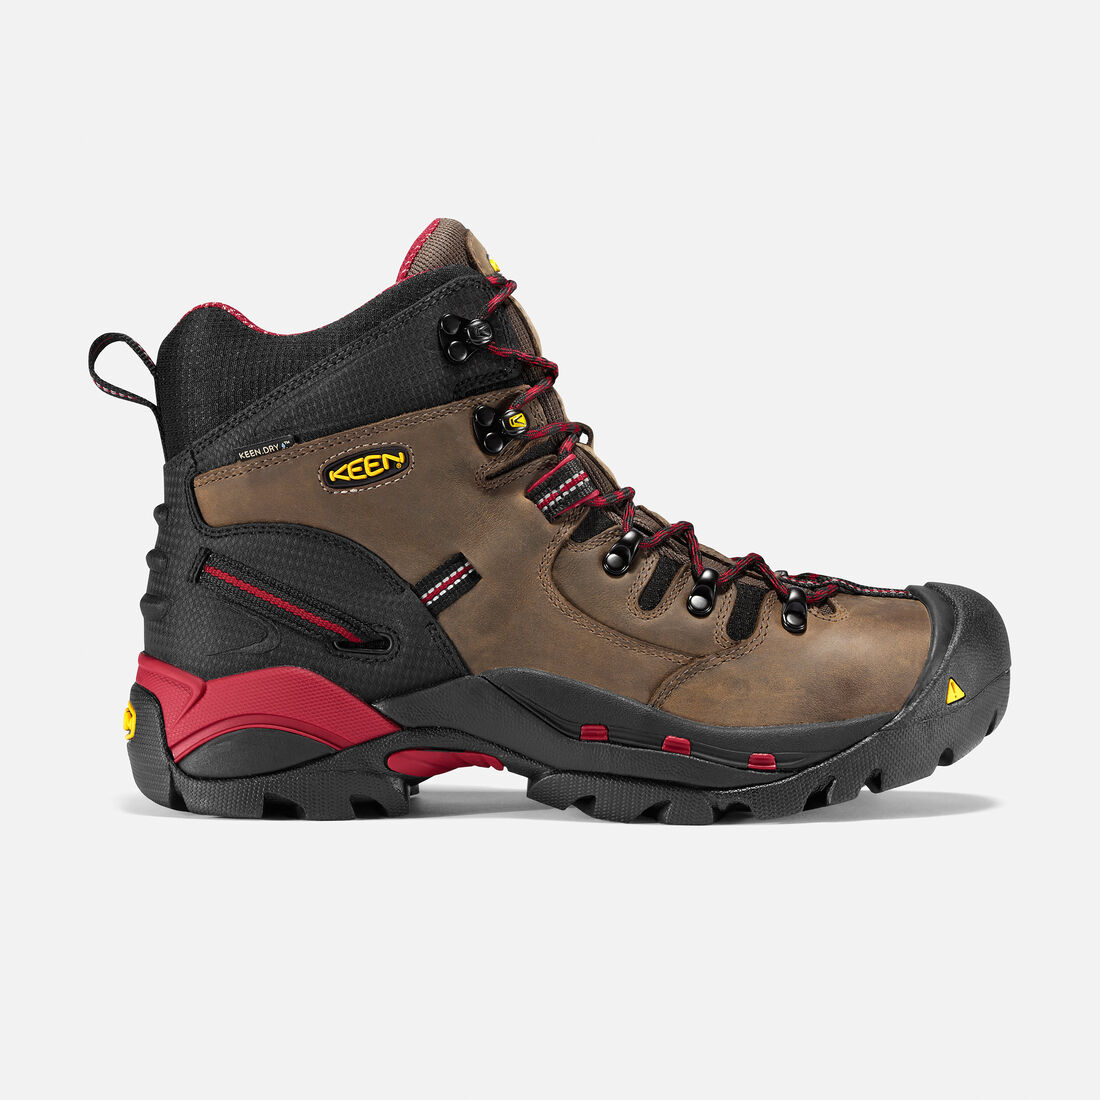 and comforter shoes mens website executive work footwear run hd boots can woorkboots workboots in safety ascent comfortable you